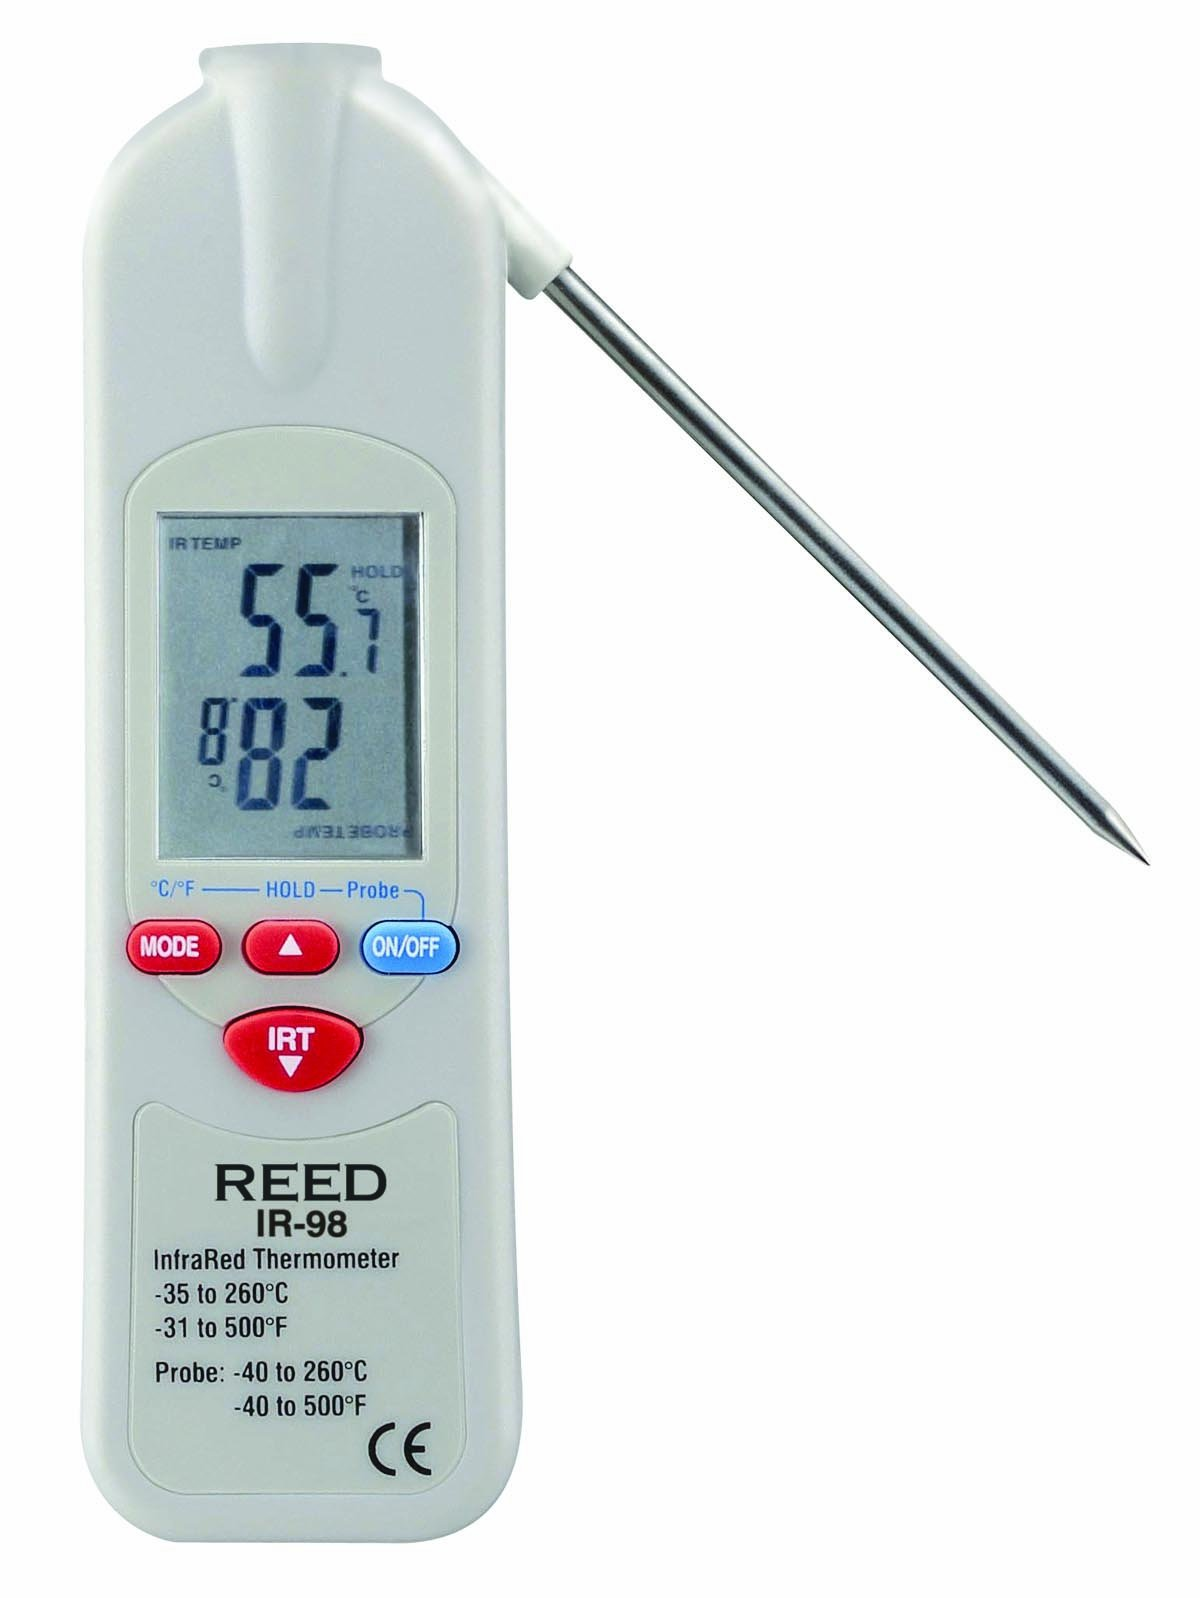 Reed IR-98 Infrared Food Service Thermometer with Integral Thermistor Probe, -35 to 260 Degrees C Range, 0.1 Degrees C Resolution, 2 Degrees C Accuracy